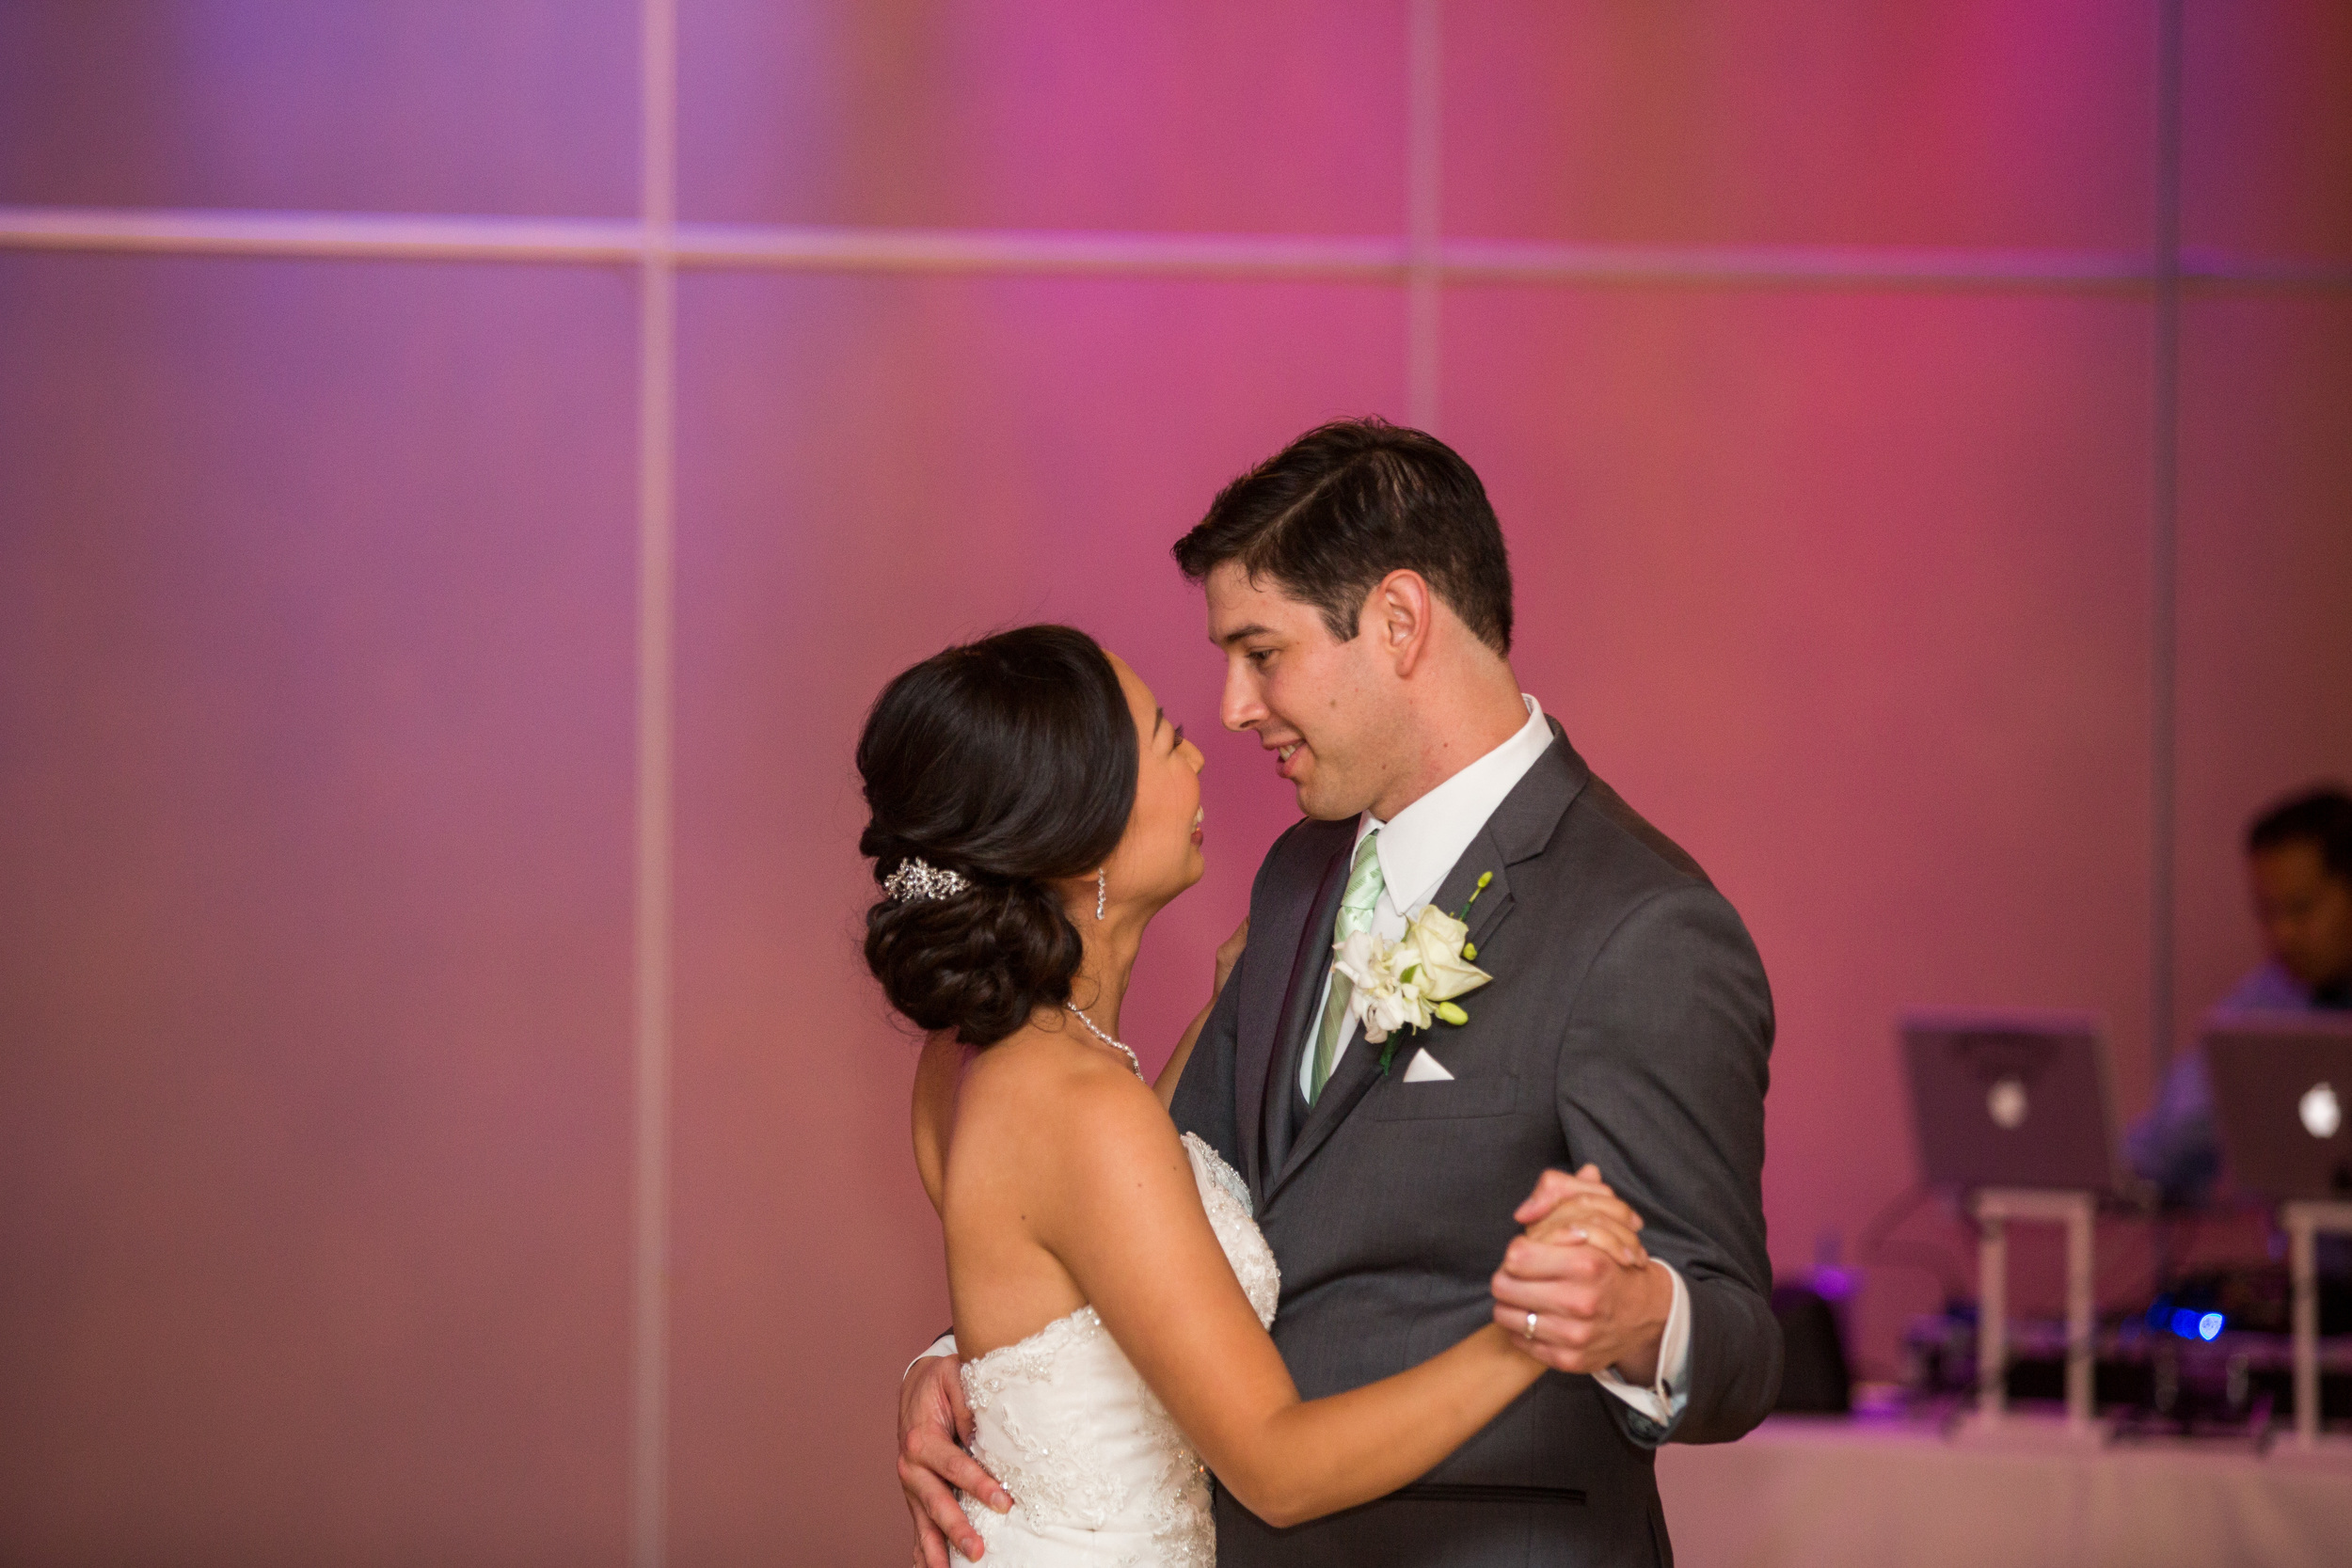 Joanne and James - Reception-60.jpg